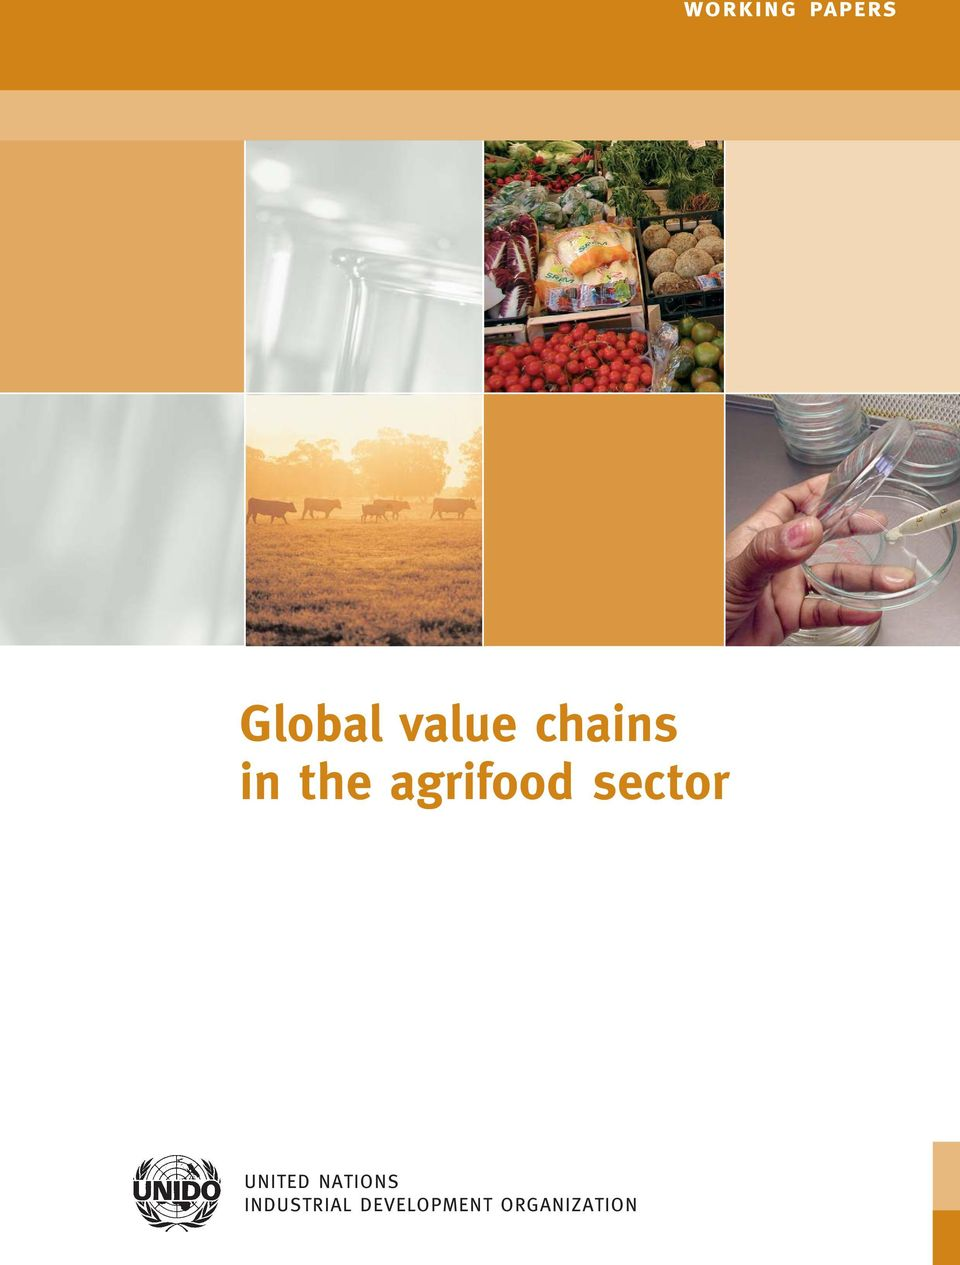 agrifood sector UNITED